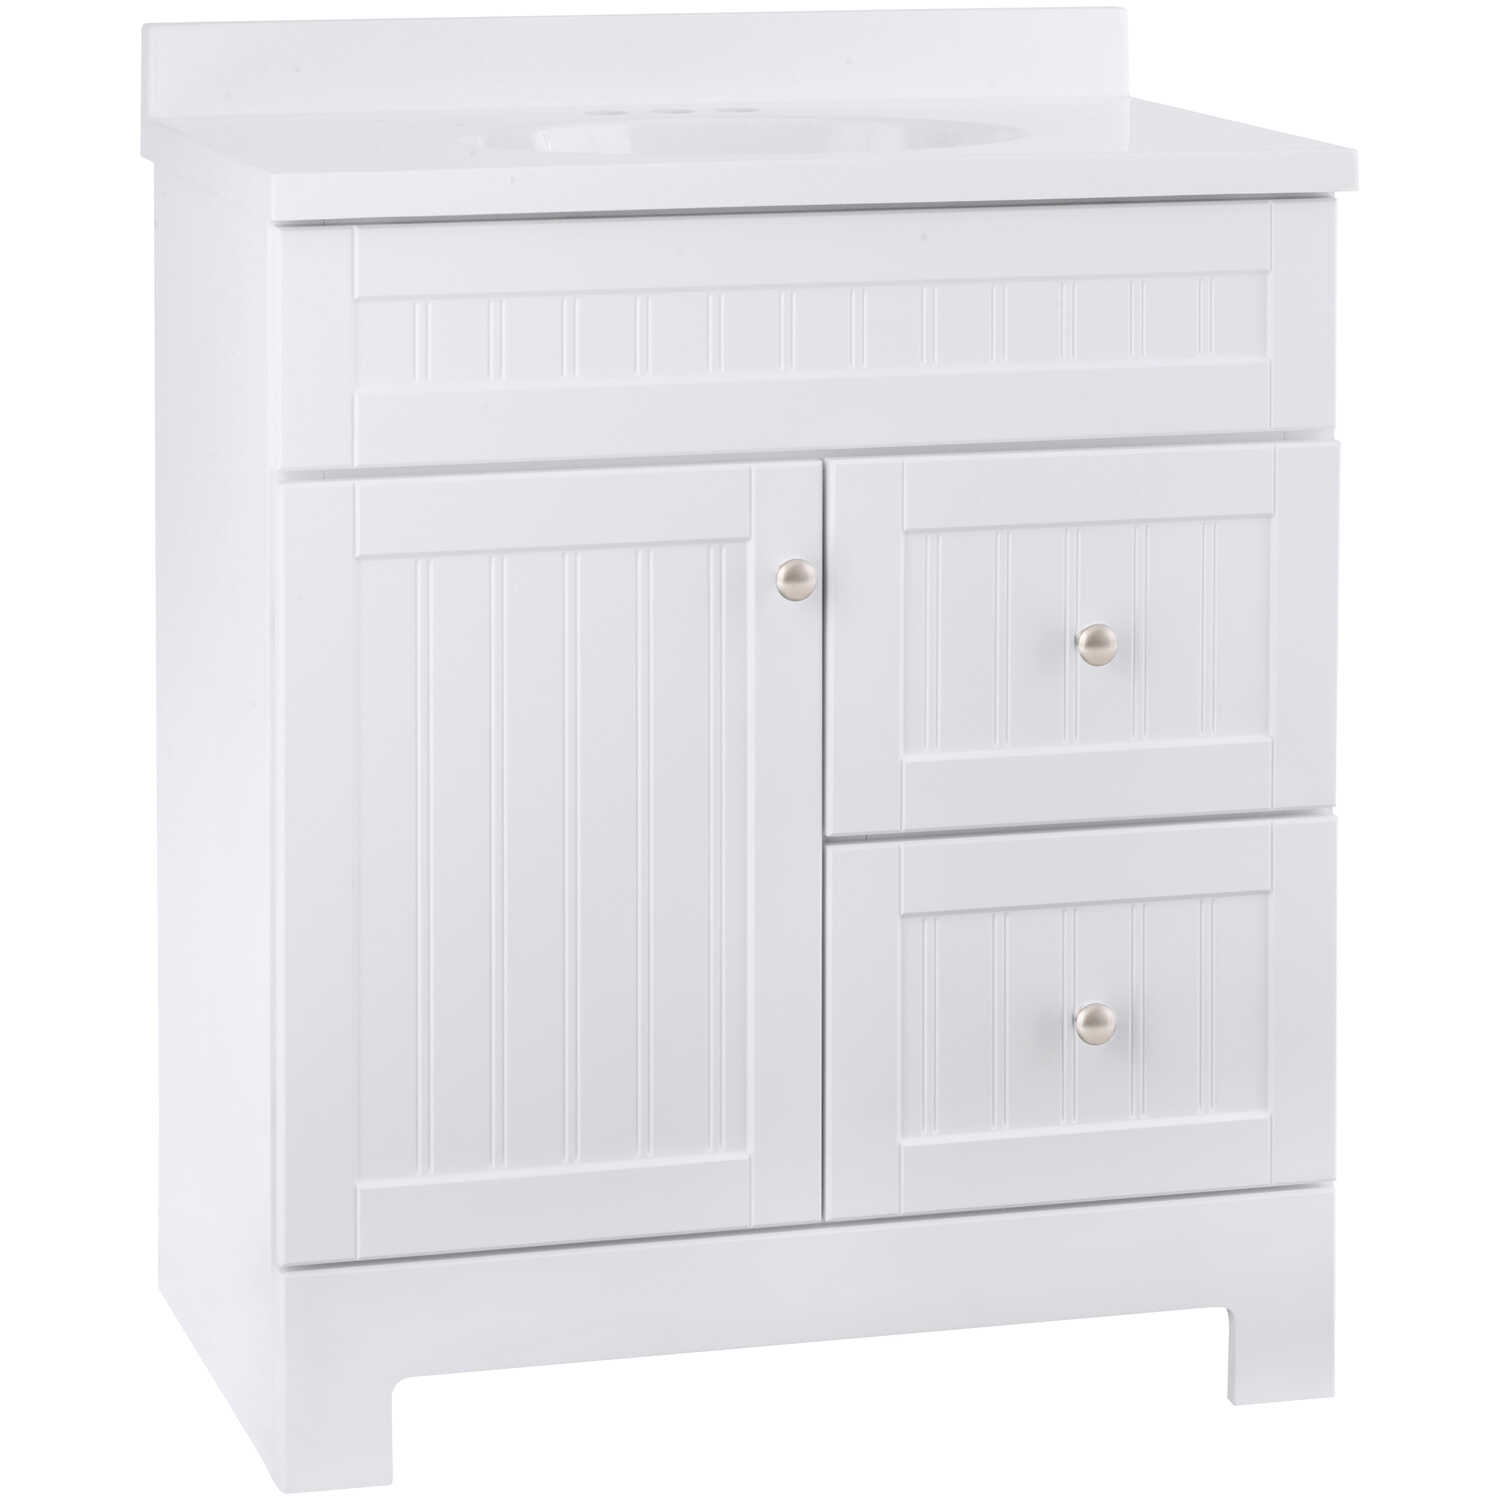 Continental Cabinets  Edgewater  Single  White  Vanity Combo  33-1/2 in. H x 30 in. W x 18 in. D